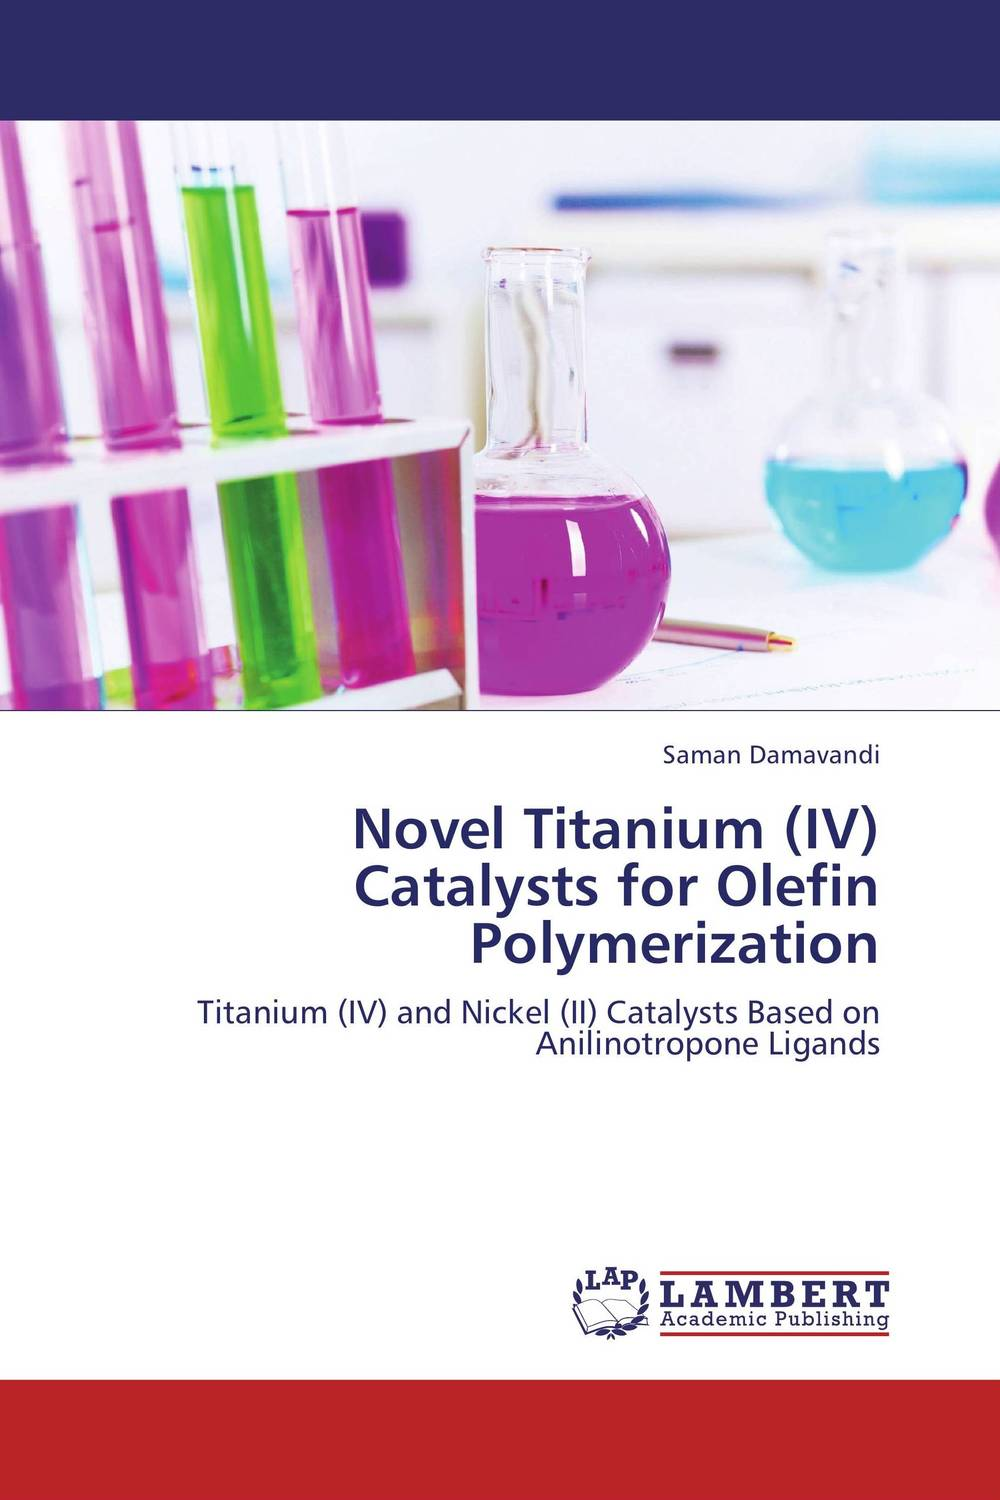 Novel Titanium (IV) Catalysts for Olefin Polymerization saman damavandi novel titanium iv catalysts for olefin polymerization